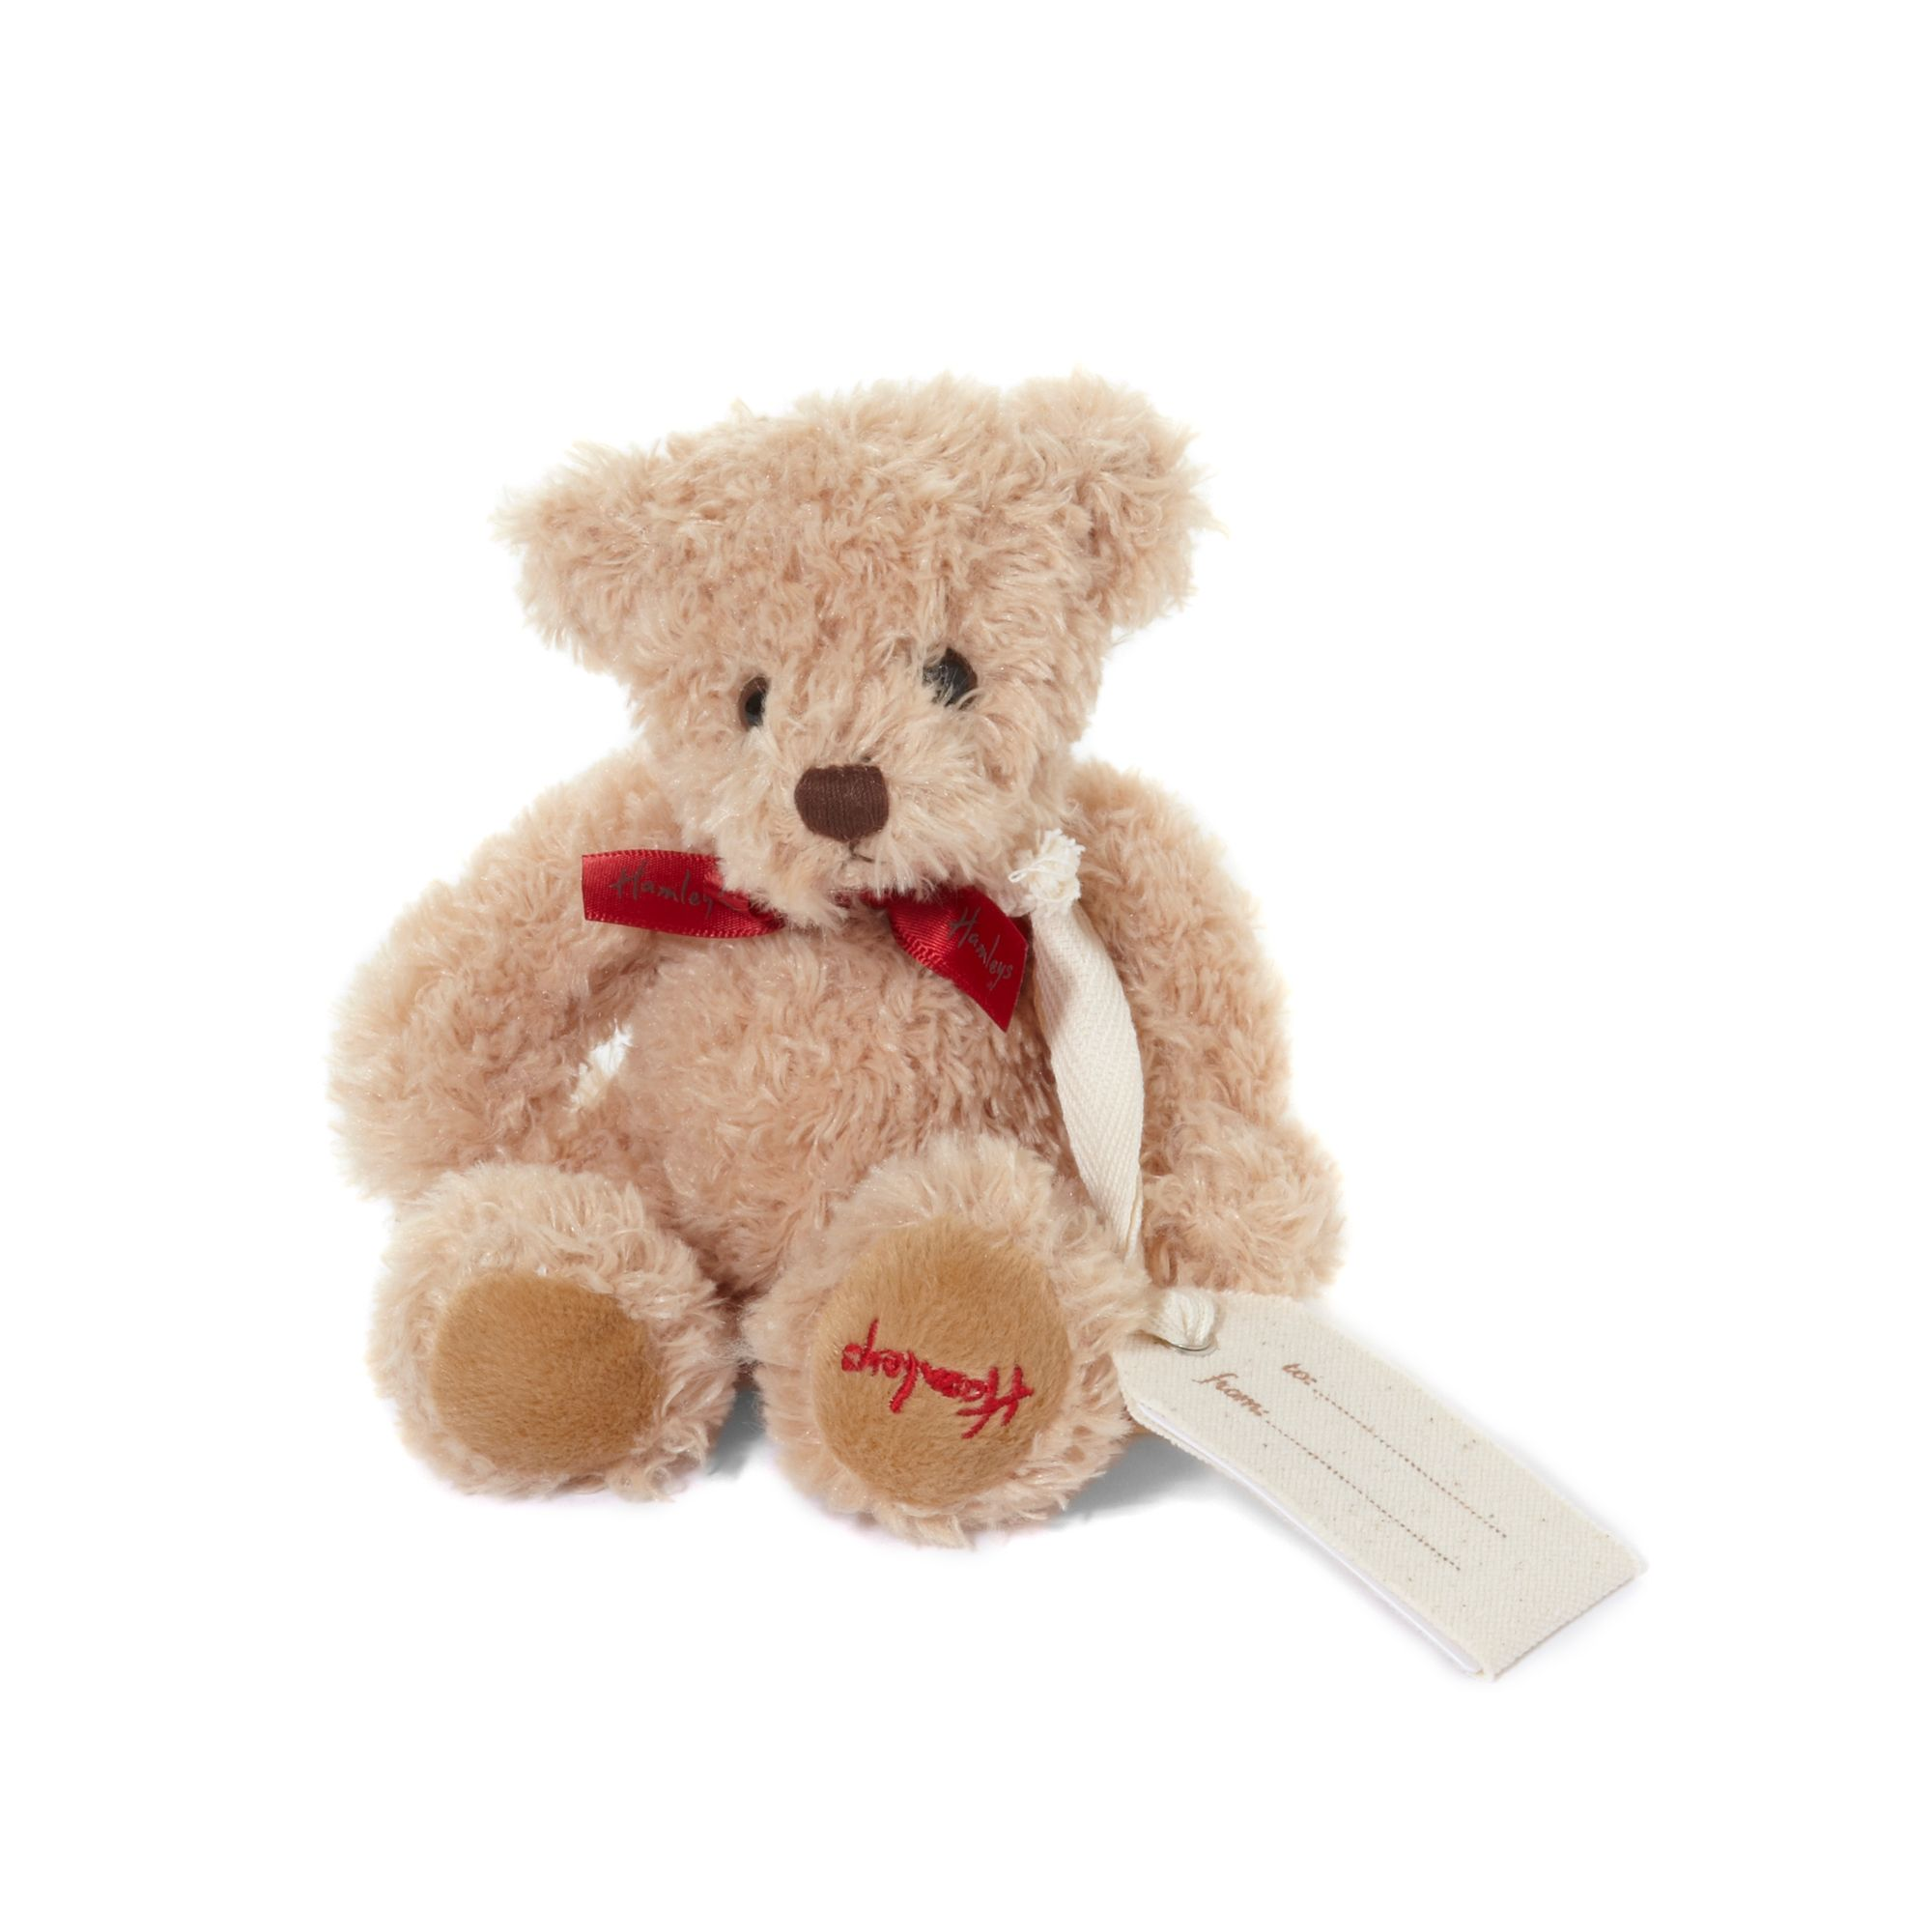 Wafer teddy bear 5 inch